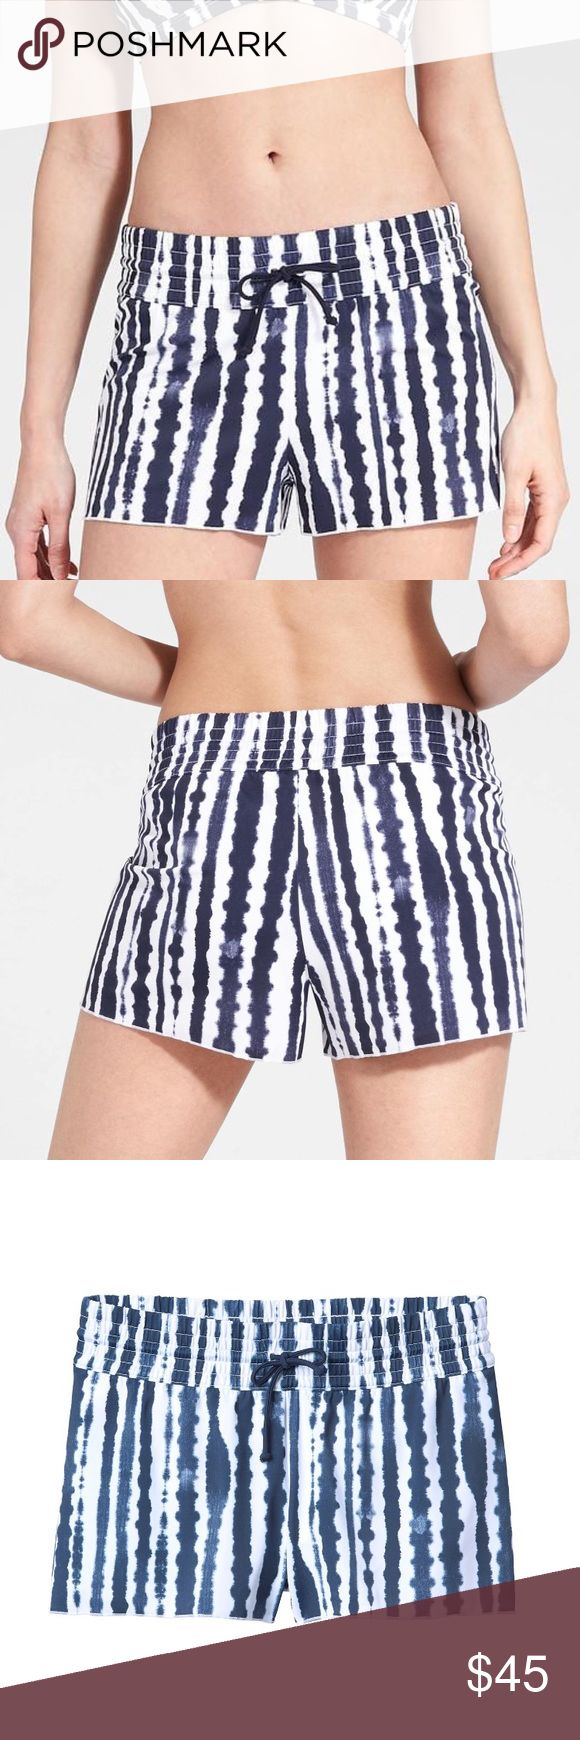 Athleta Wave Break swim short NWT Athleta Wave Break smocked swim short in white and navy stripes - pattern looks like a batik. Pair with a bikini top or tankini in white, red, Athleta's dress blue or even silver or gold and you're ready for warm weather vacations or summertime fun! Pull-on design with attached brief - great for sitting by the pool and then going to lunch or for exploring water/amusement parks where you want more coverage. Amazingly soft fabric, doesn't cling. Smoke- and…